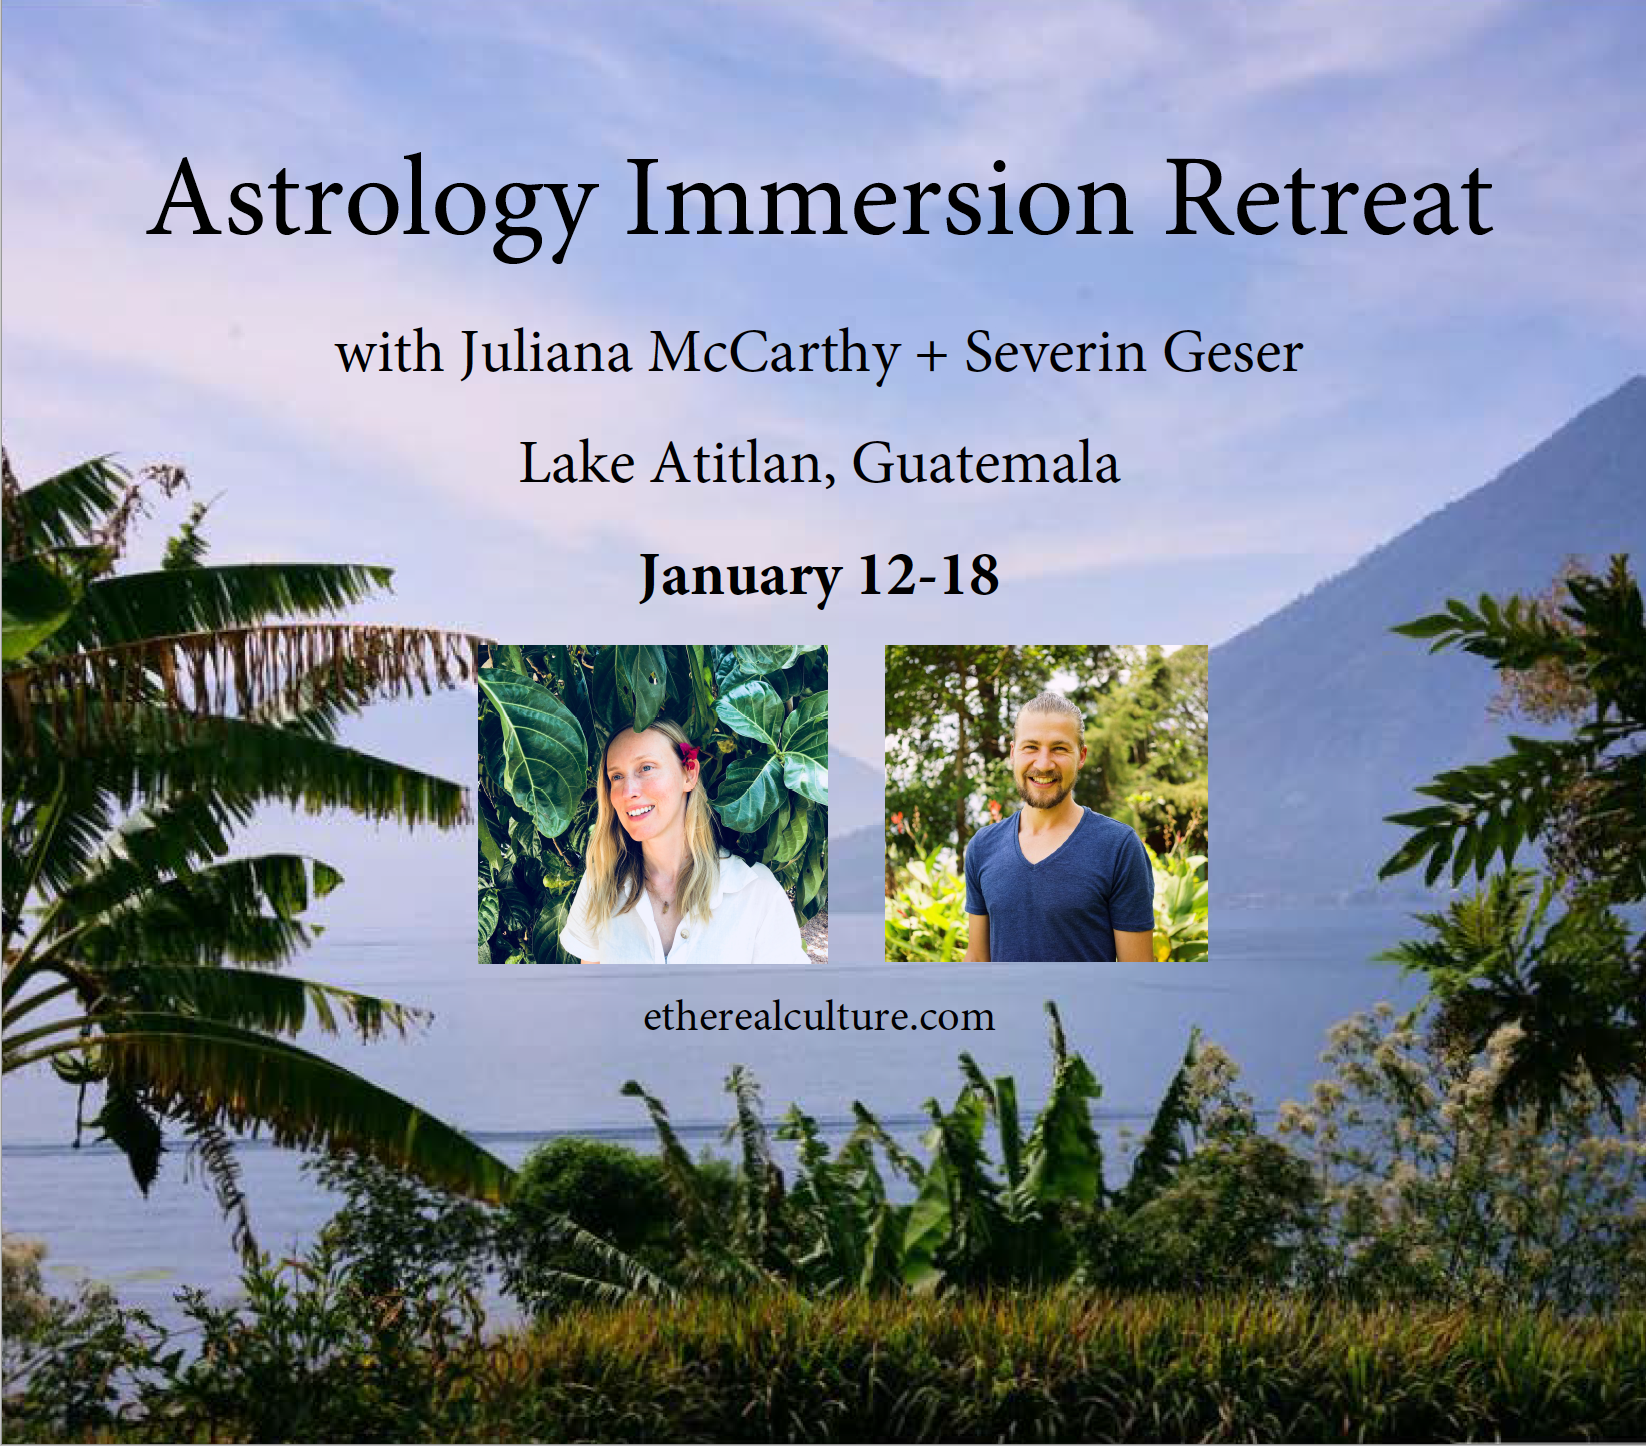 Join us for this  Astrology Immersion Retreat  in January!